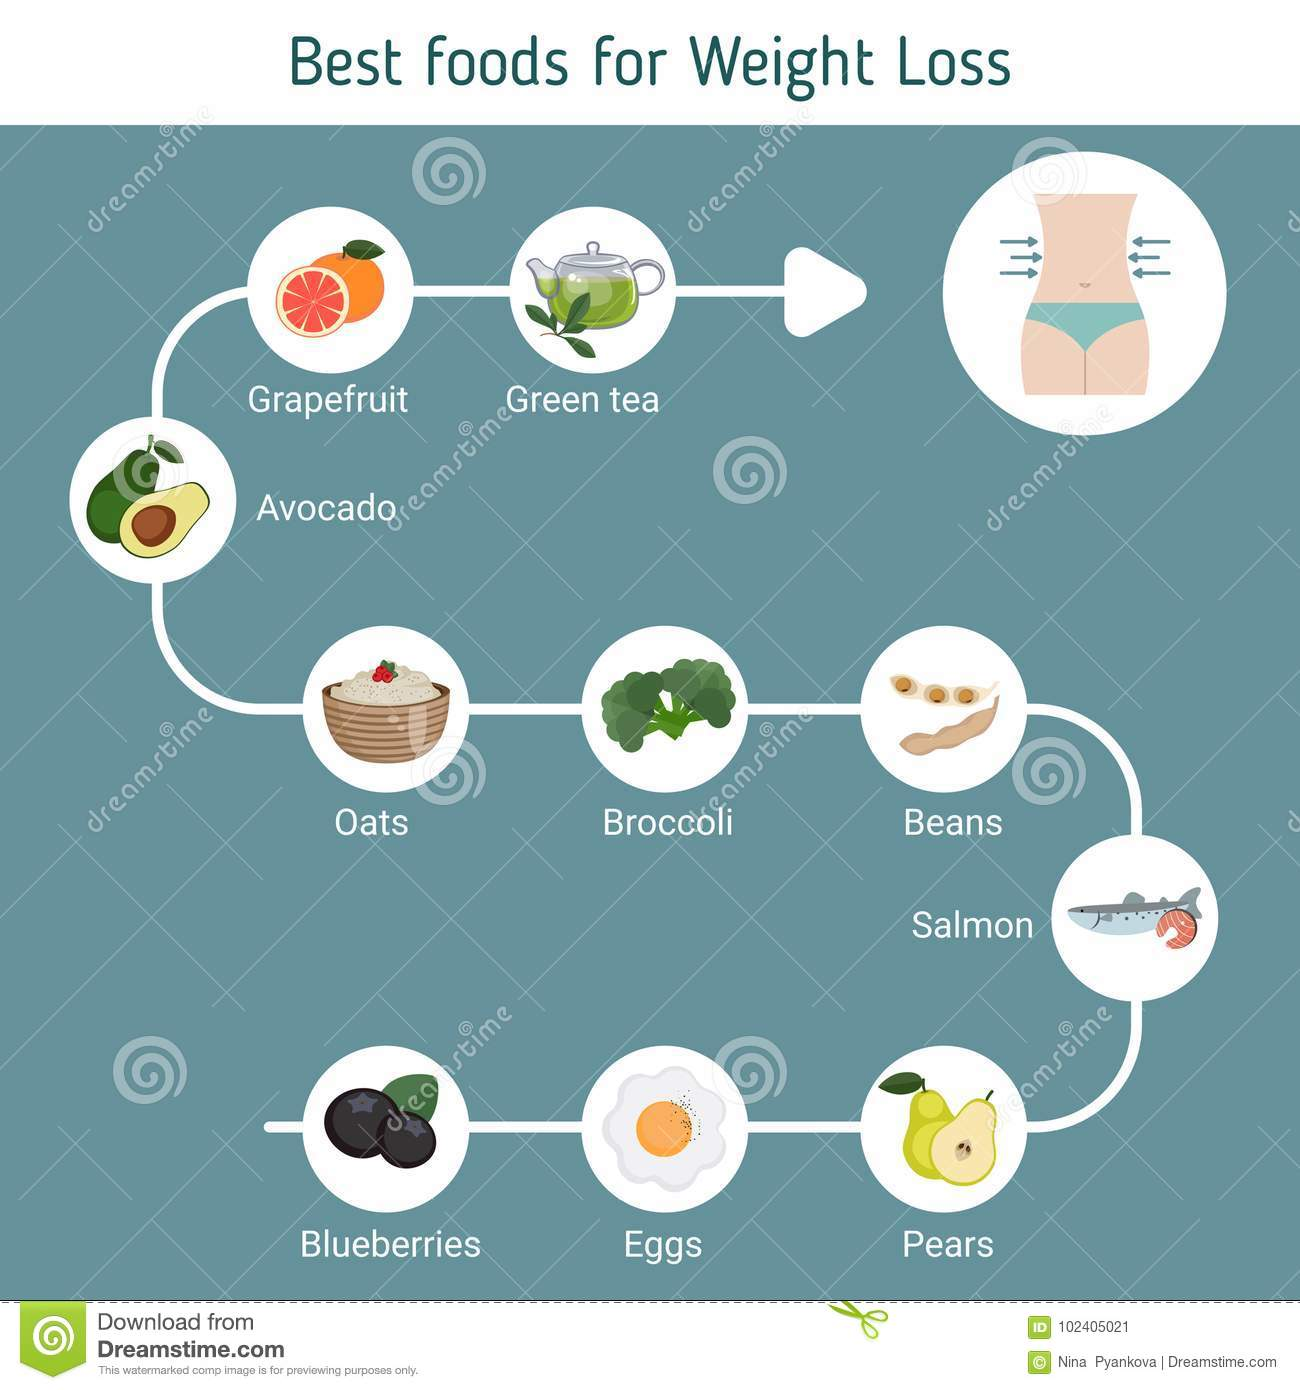 Best Foods for weight loss.